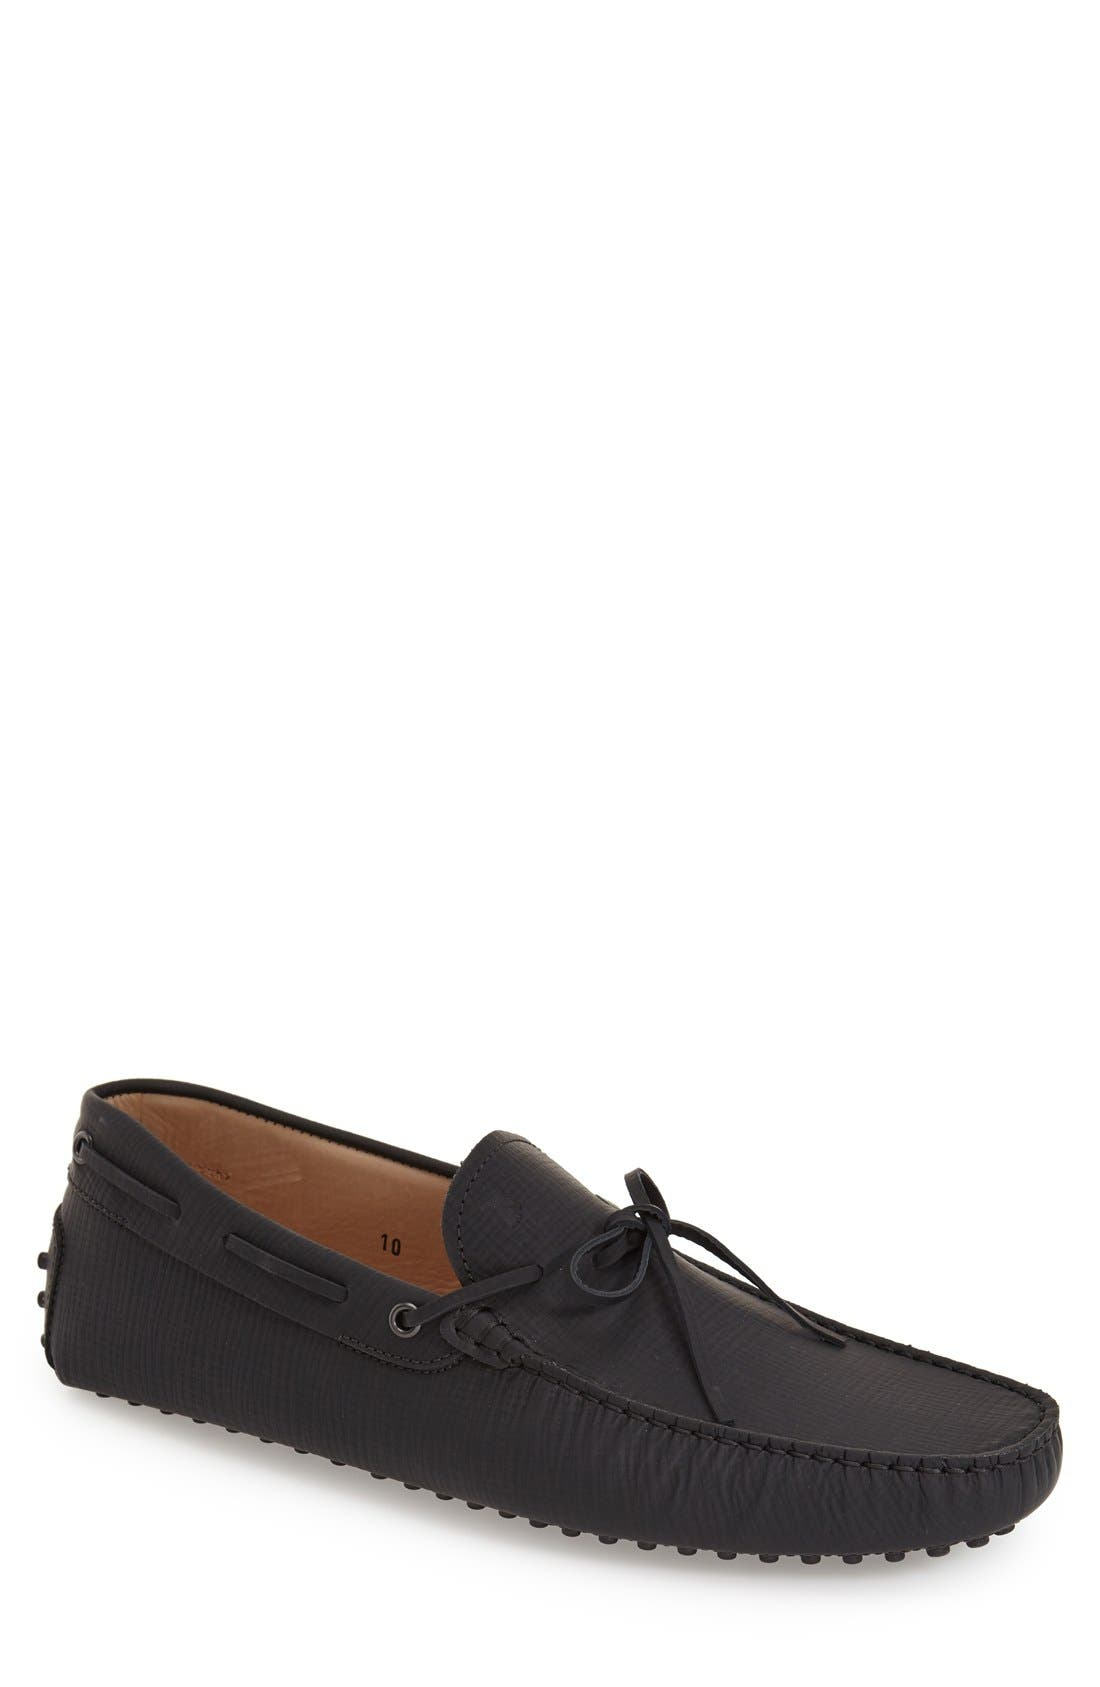 Gommini Tie Front Driving Moccasin,                             Main thumbnail 1, color,